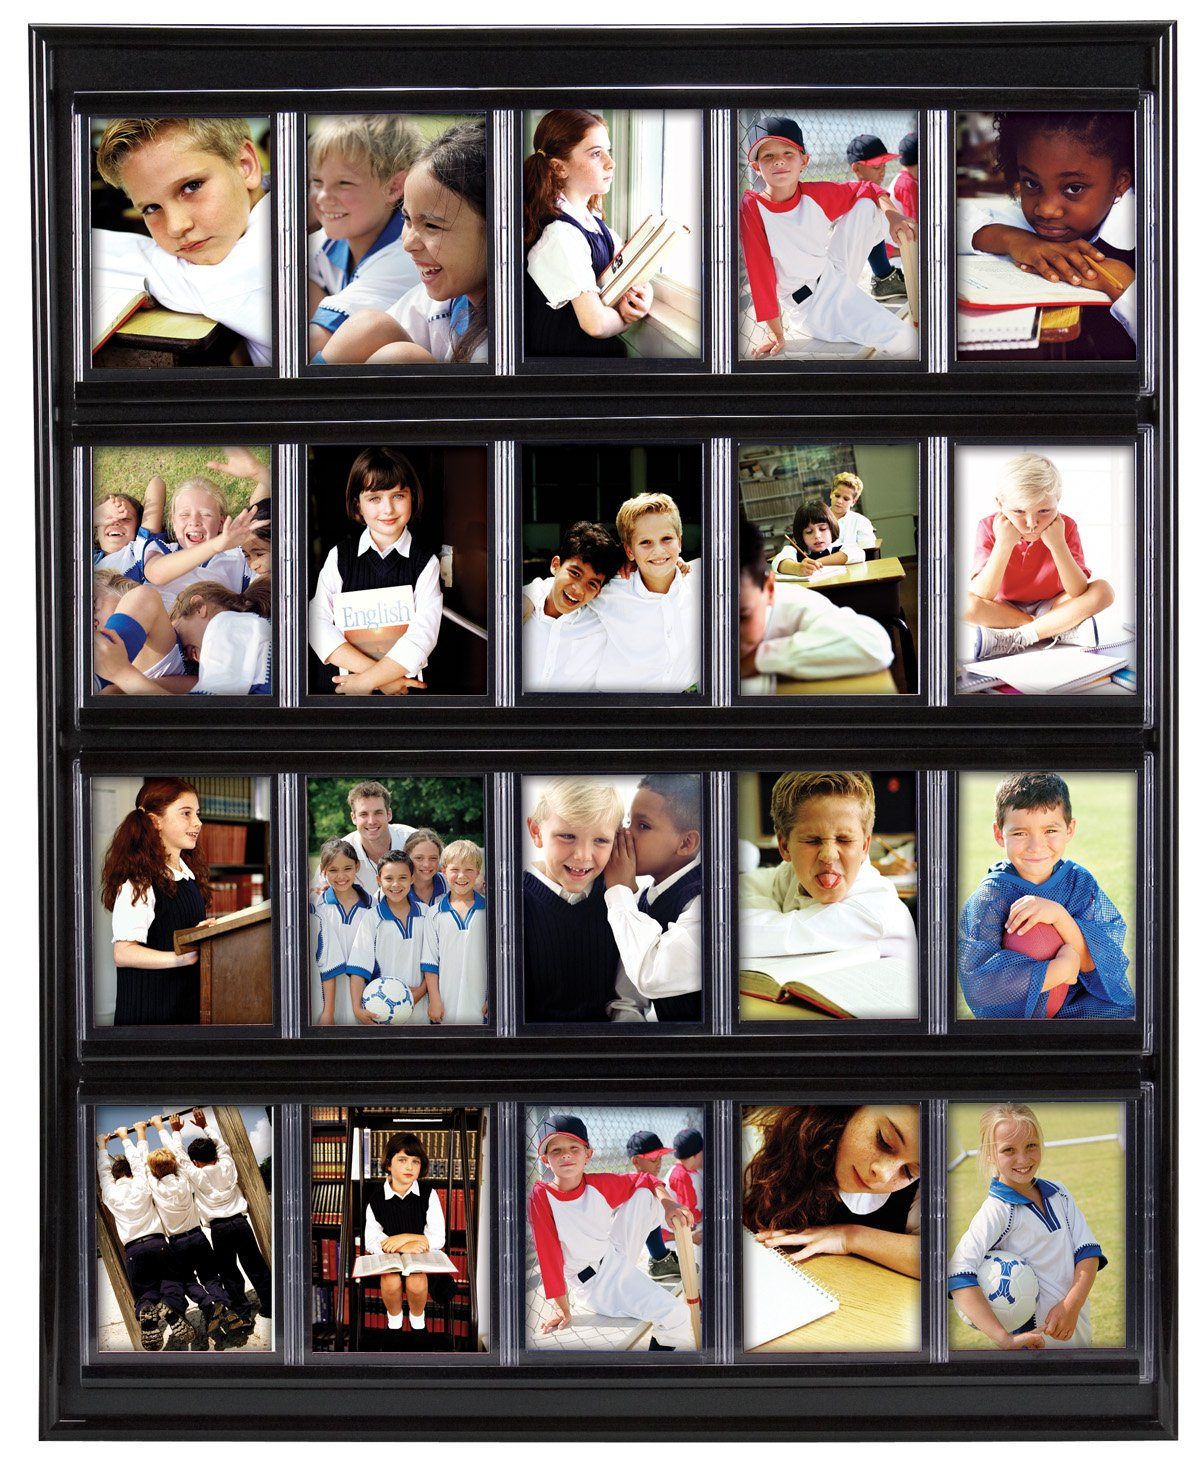 Amazon.com - MCS 16x20 Inch Collector Card Wall Display, Holds 20 ...